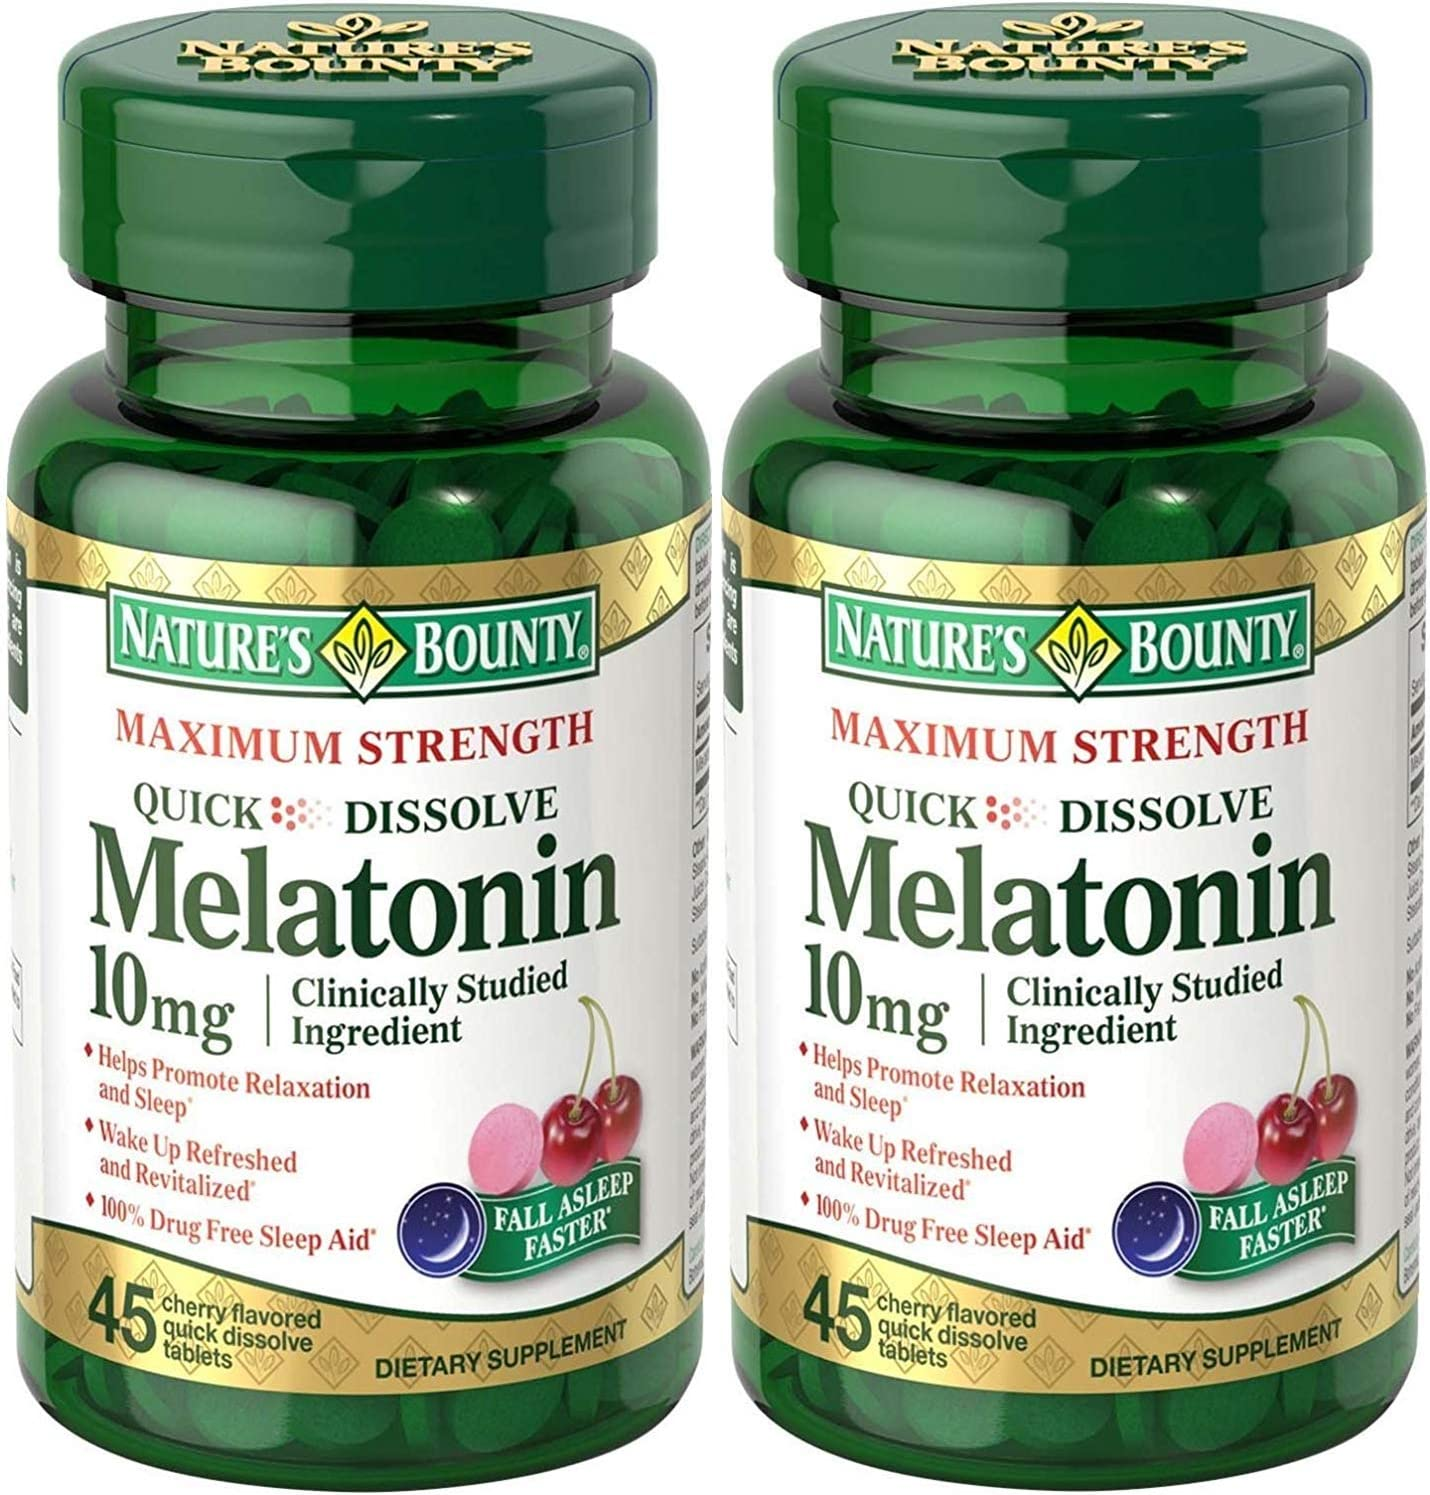 Natures Bounty Melatonin Quick Dissolve Tablet, 10 mg, 90 Tablets (2 X 45Count Bottles)